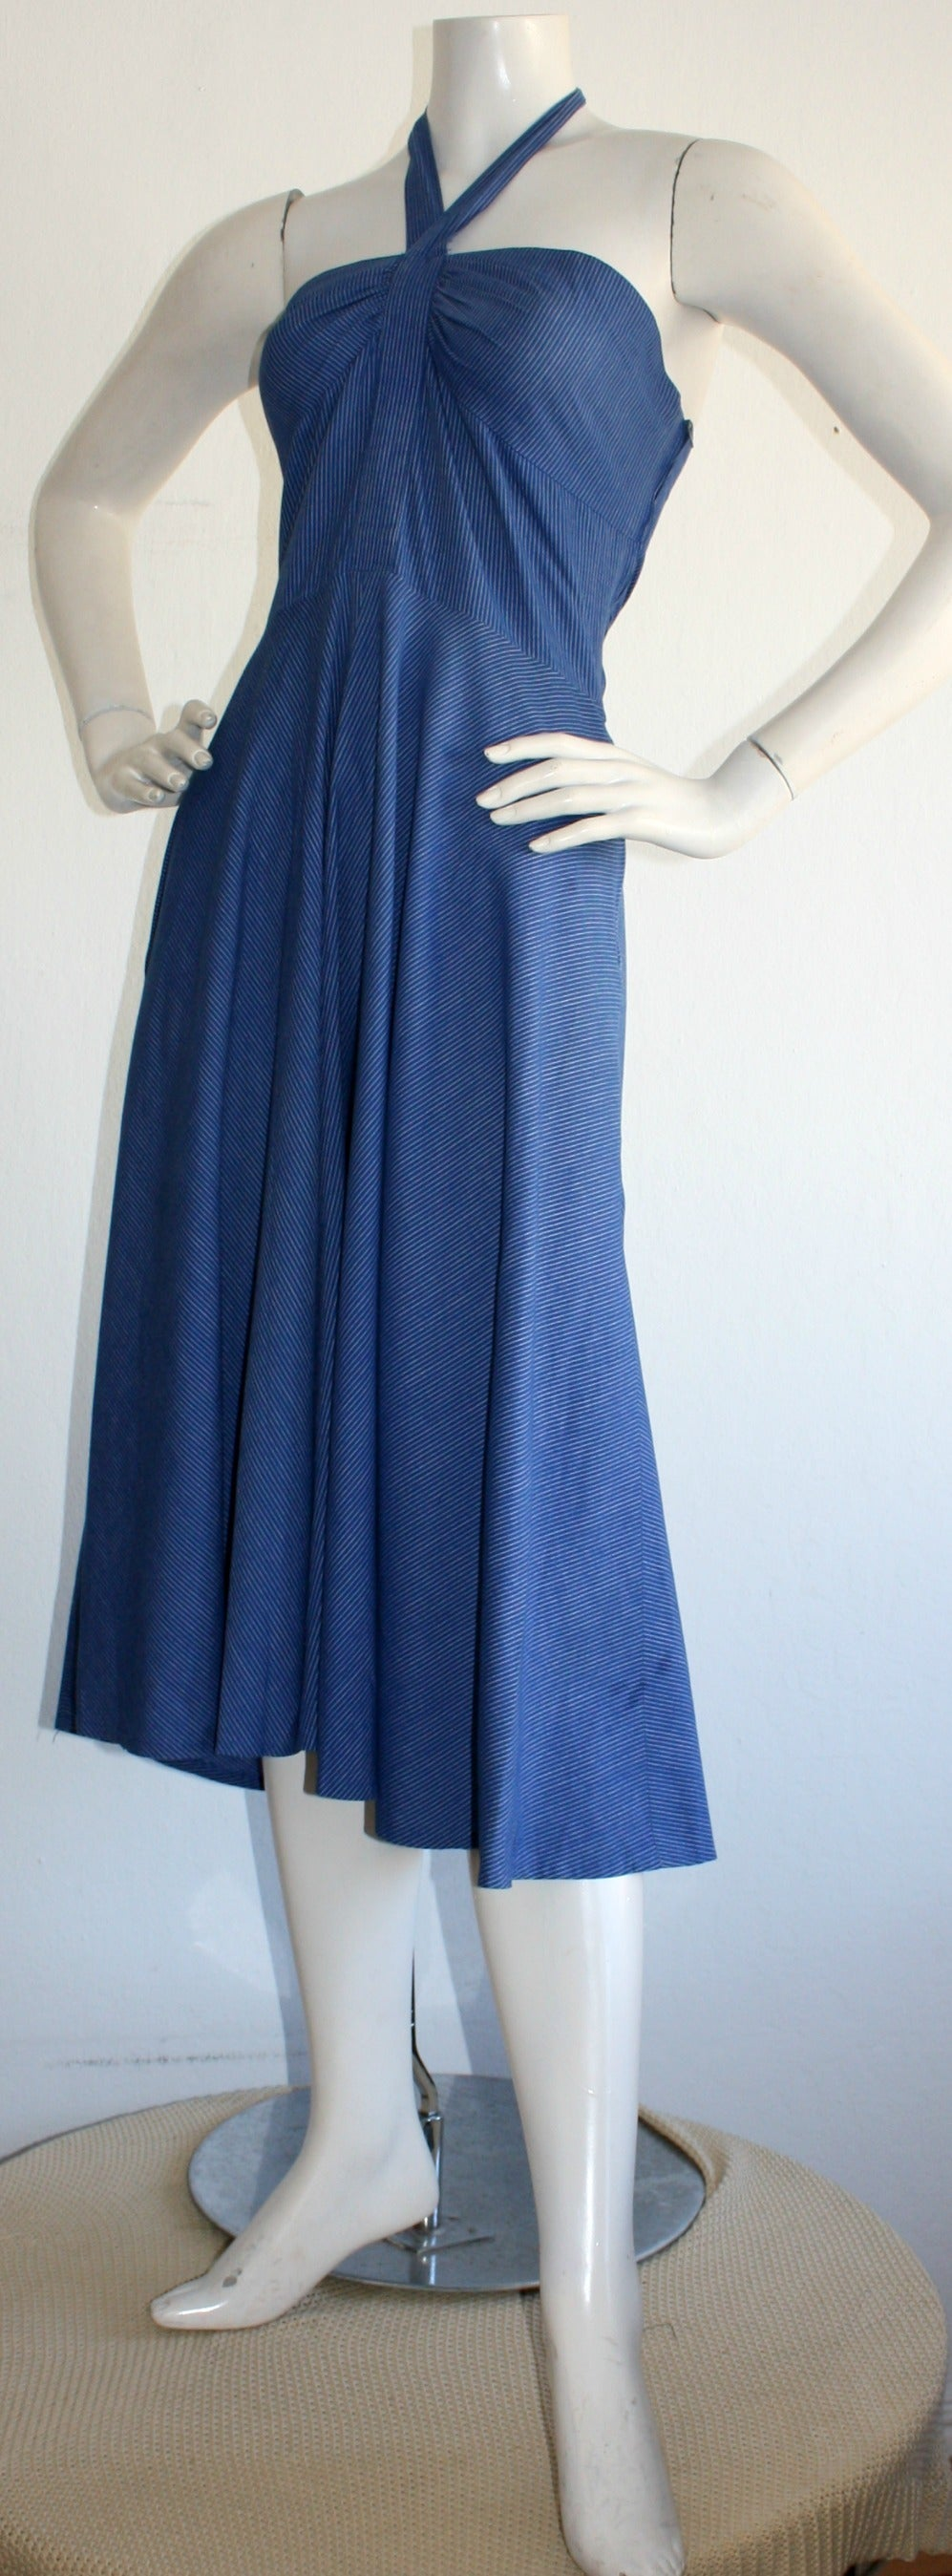 Vintage Guy Laroche Blue Striped Cotton Halter Rockabilly Sun Dress 5